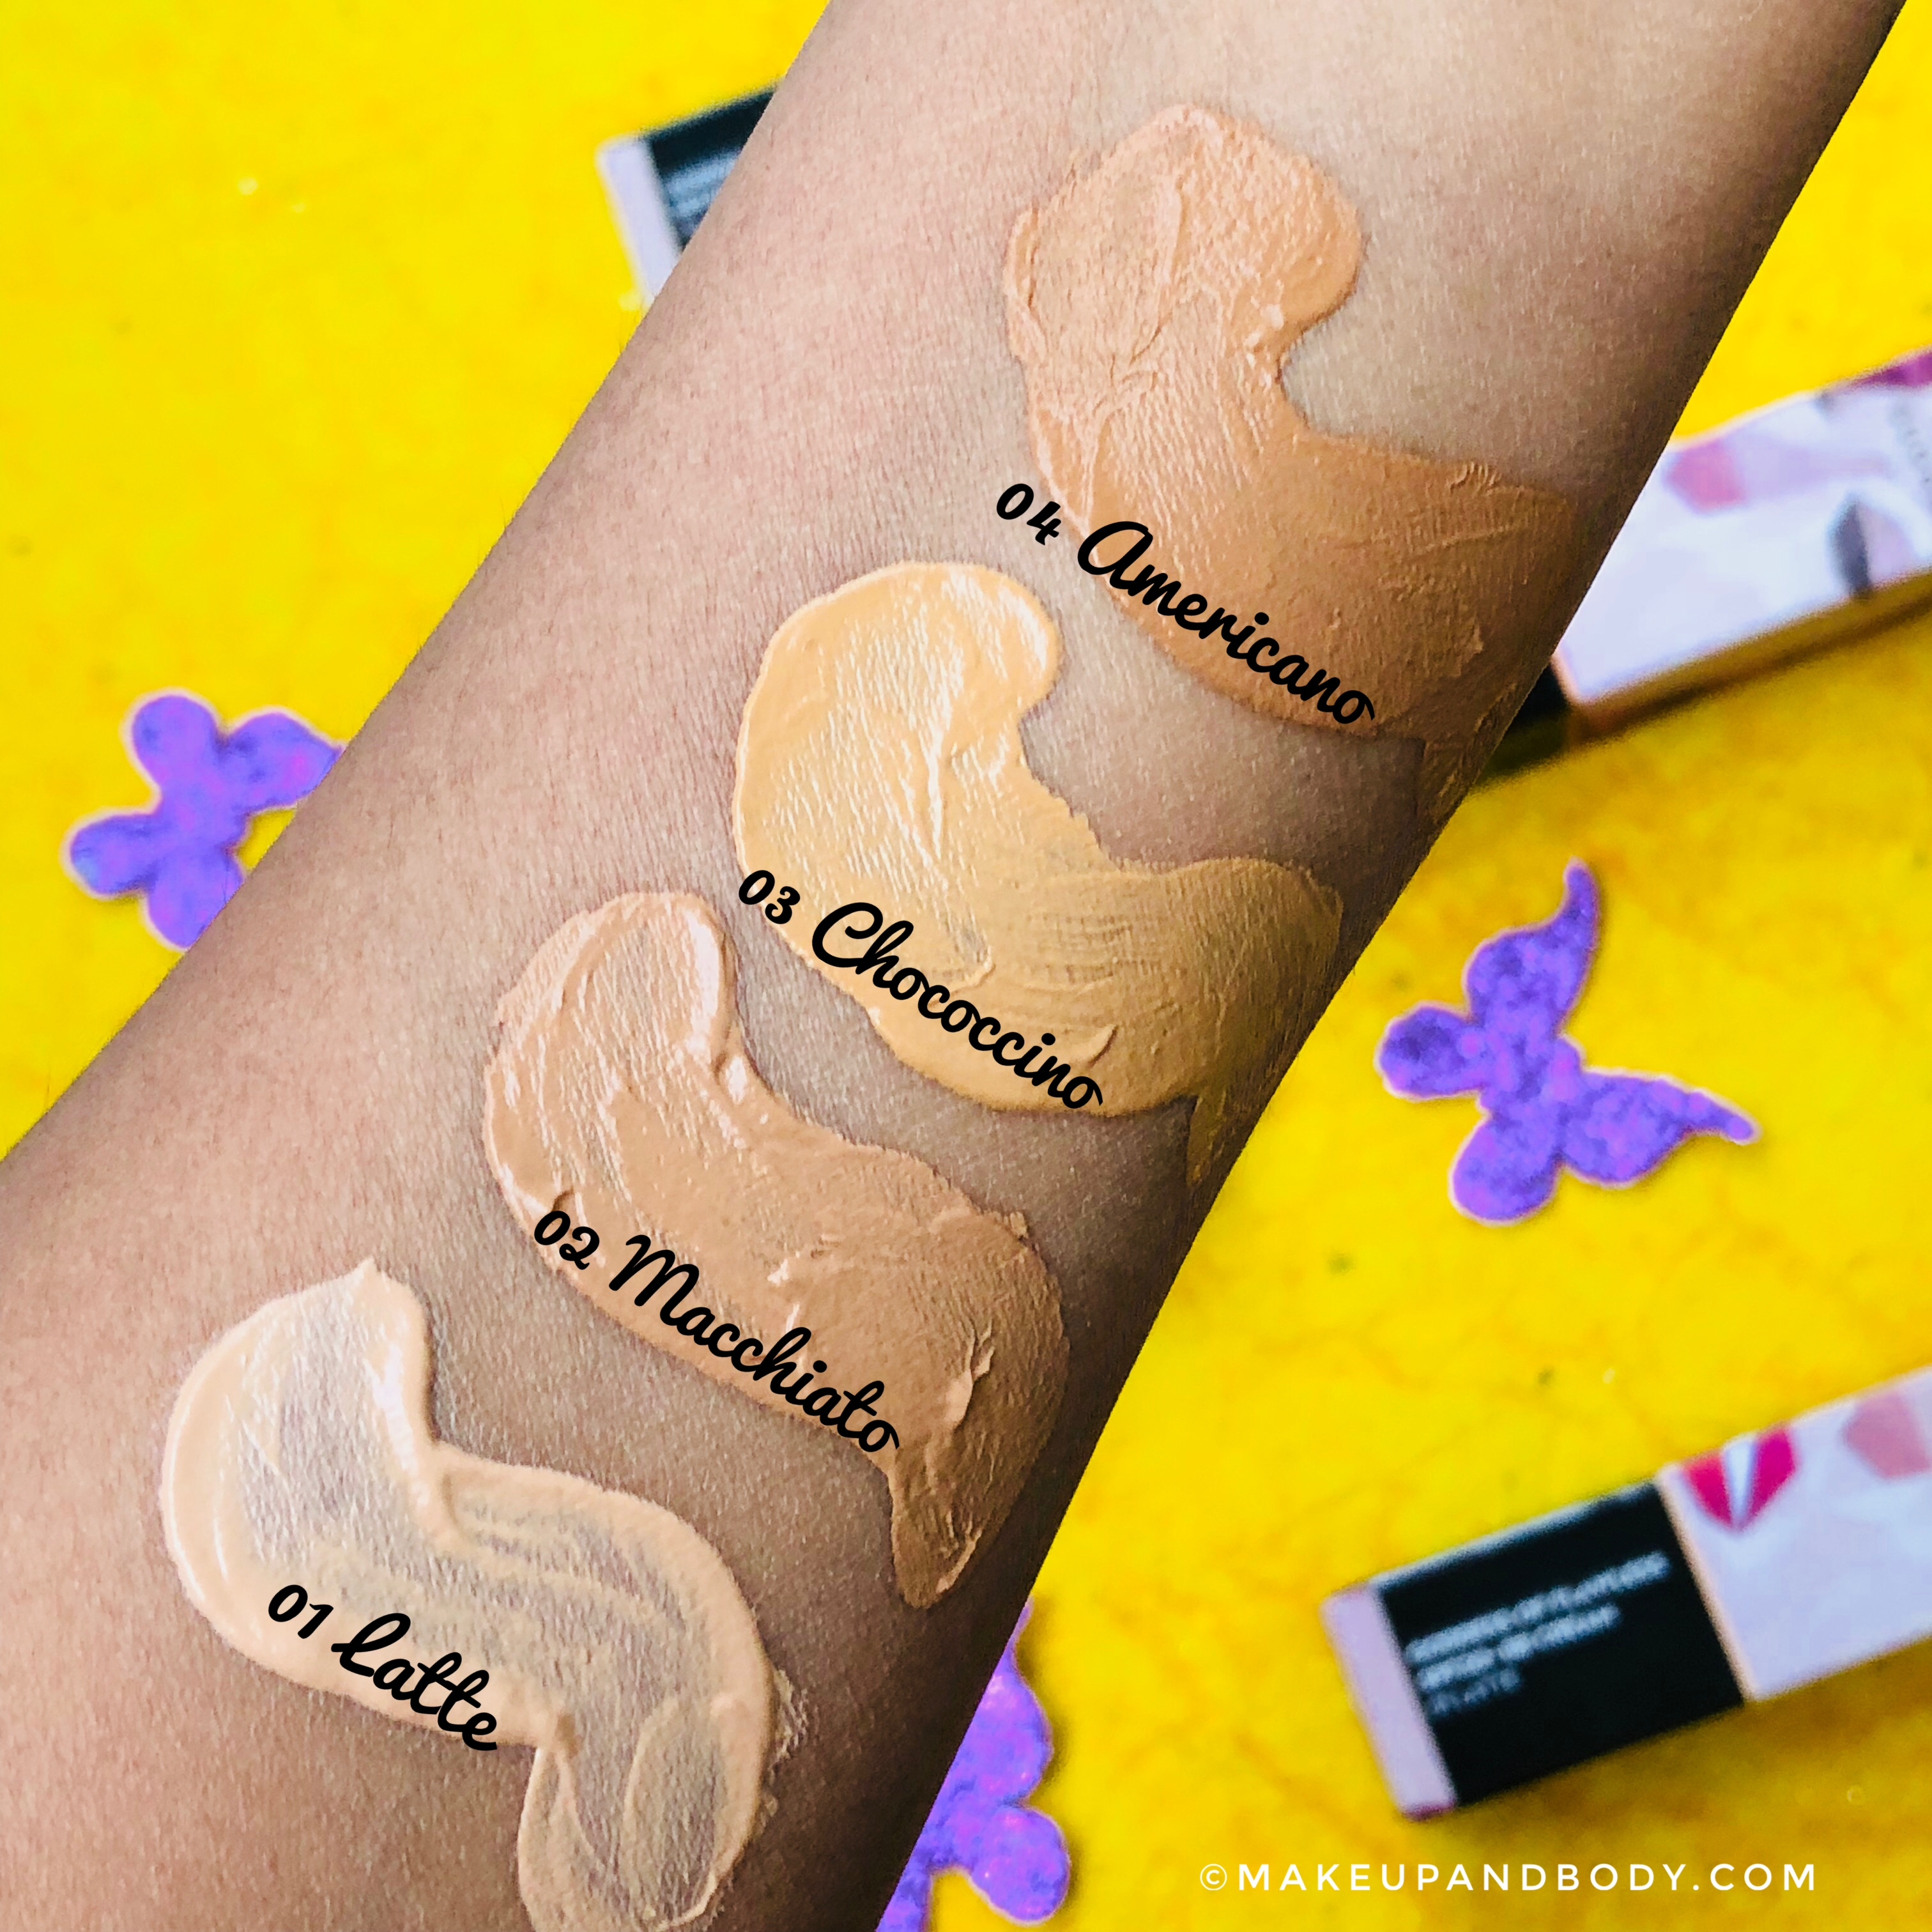 SUGAR Goddess Of Flawless SPF30+ BB Cream Review & Swatches for all 4 shades